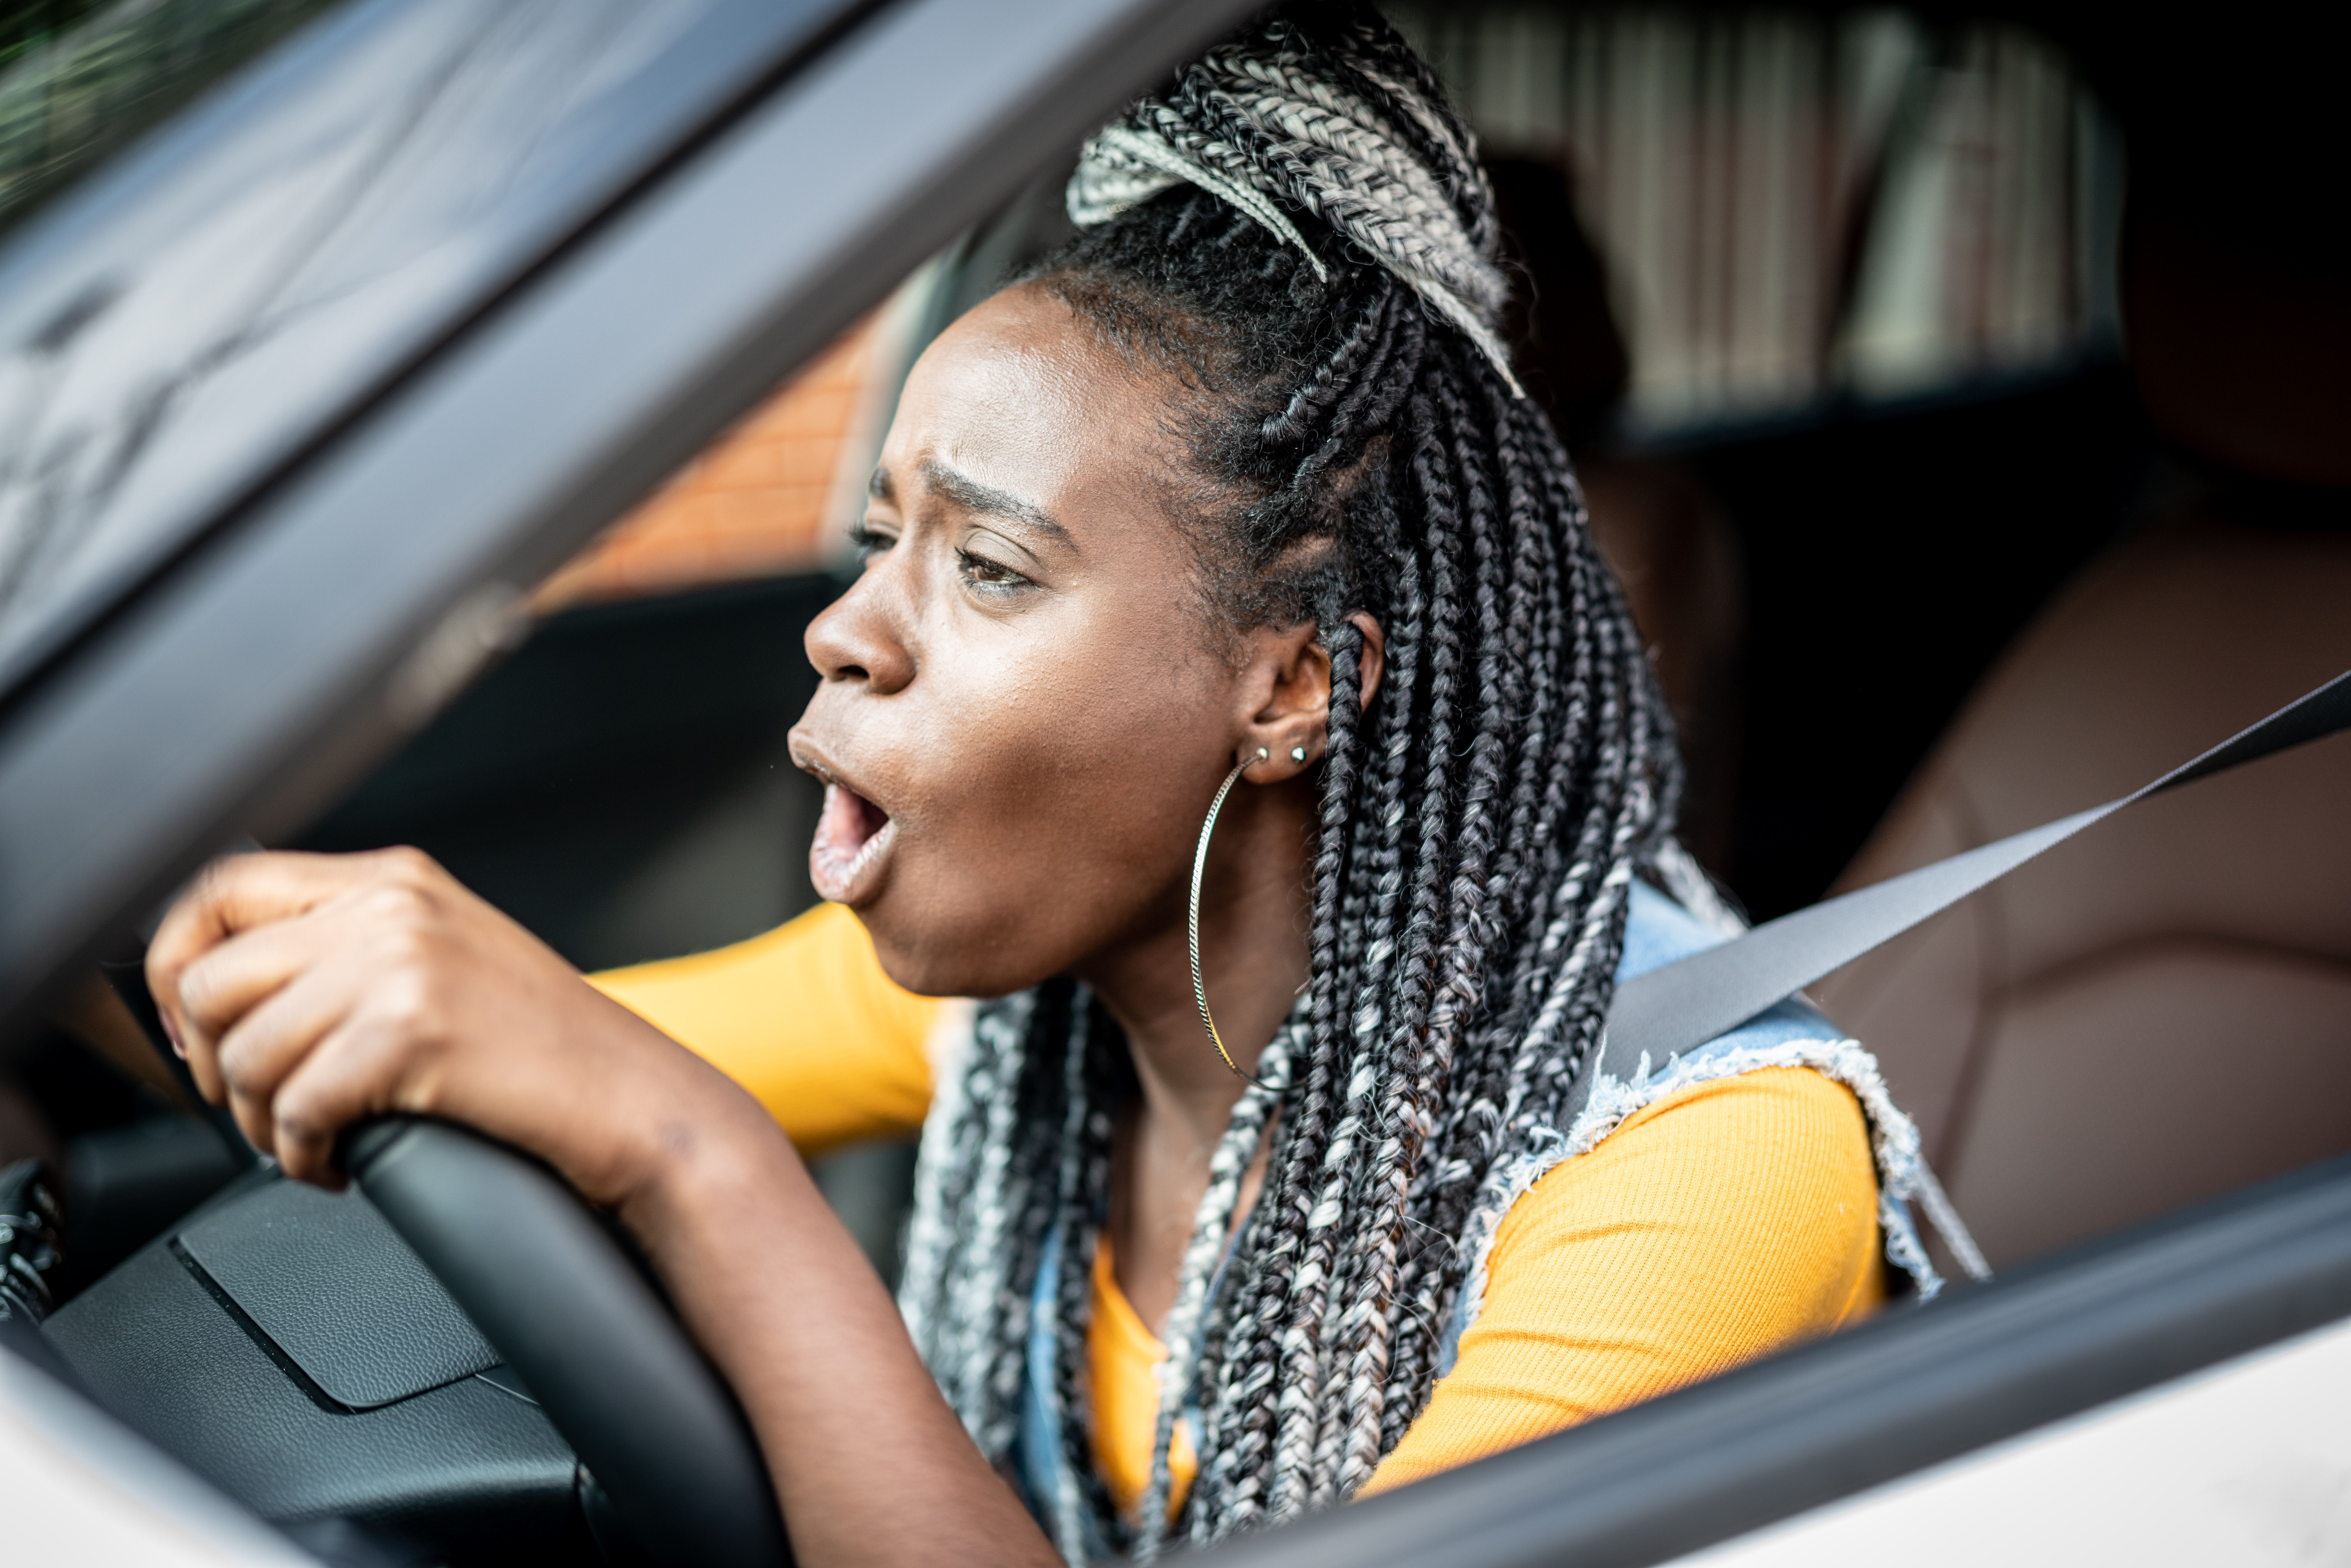 Portrait of Stressed African Woman In Car